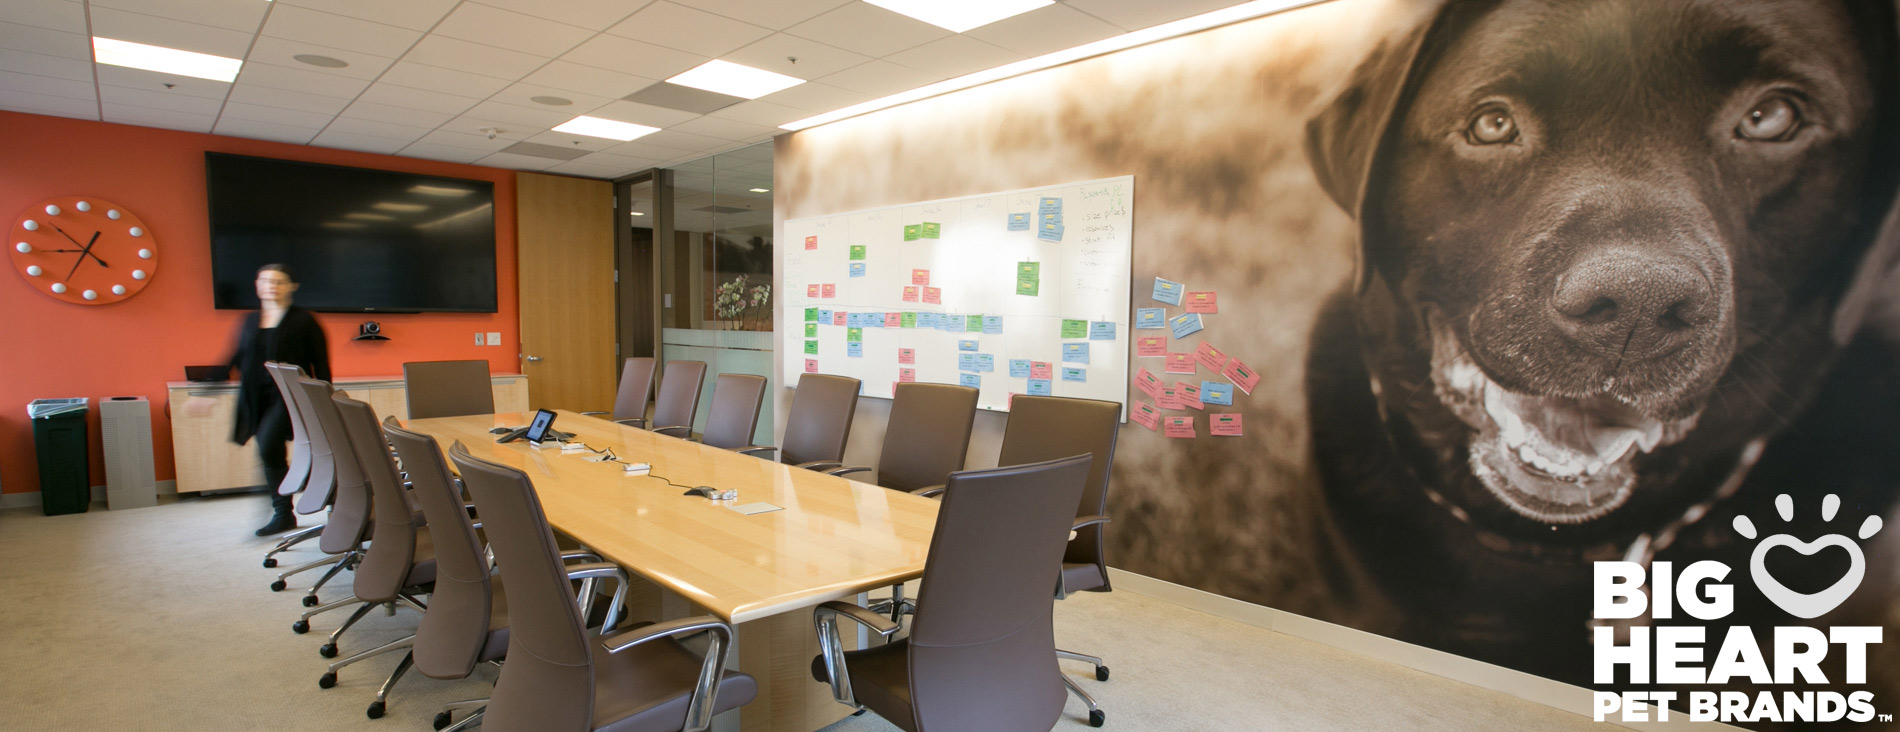 Commissioned Photography | Big Heart Conference Room by Mark Rogers